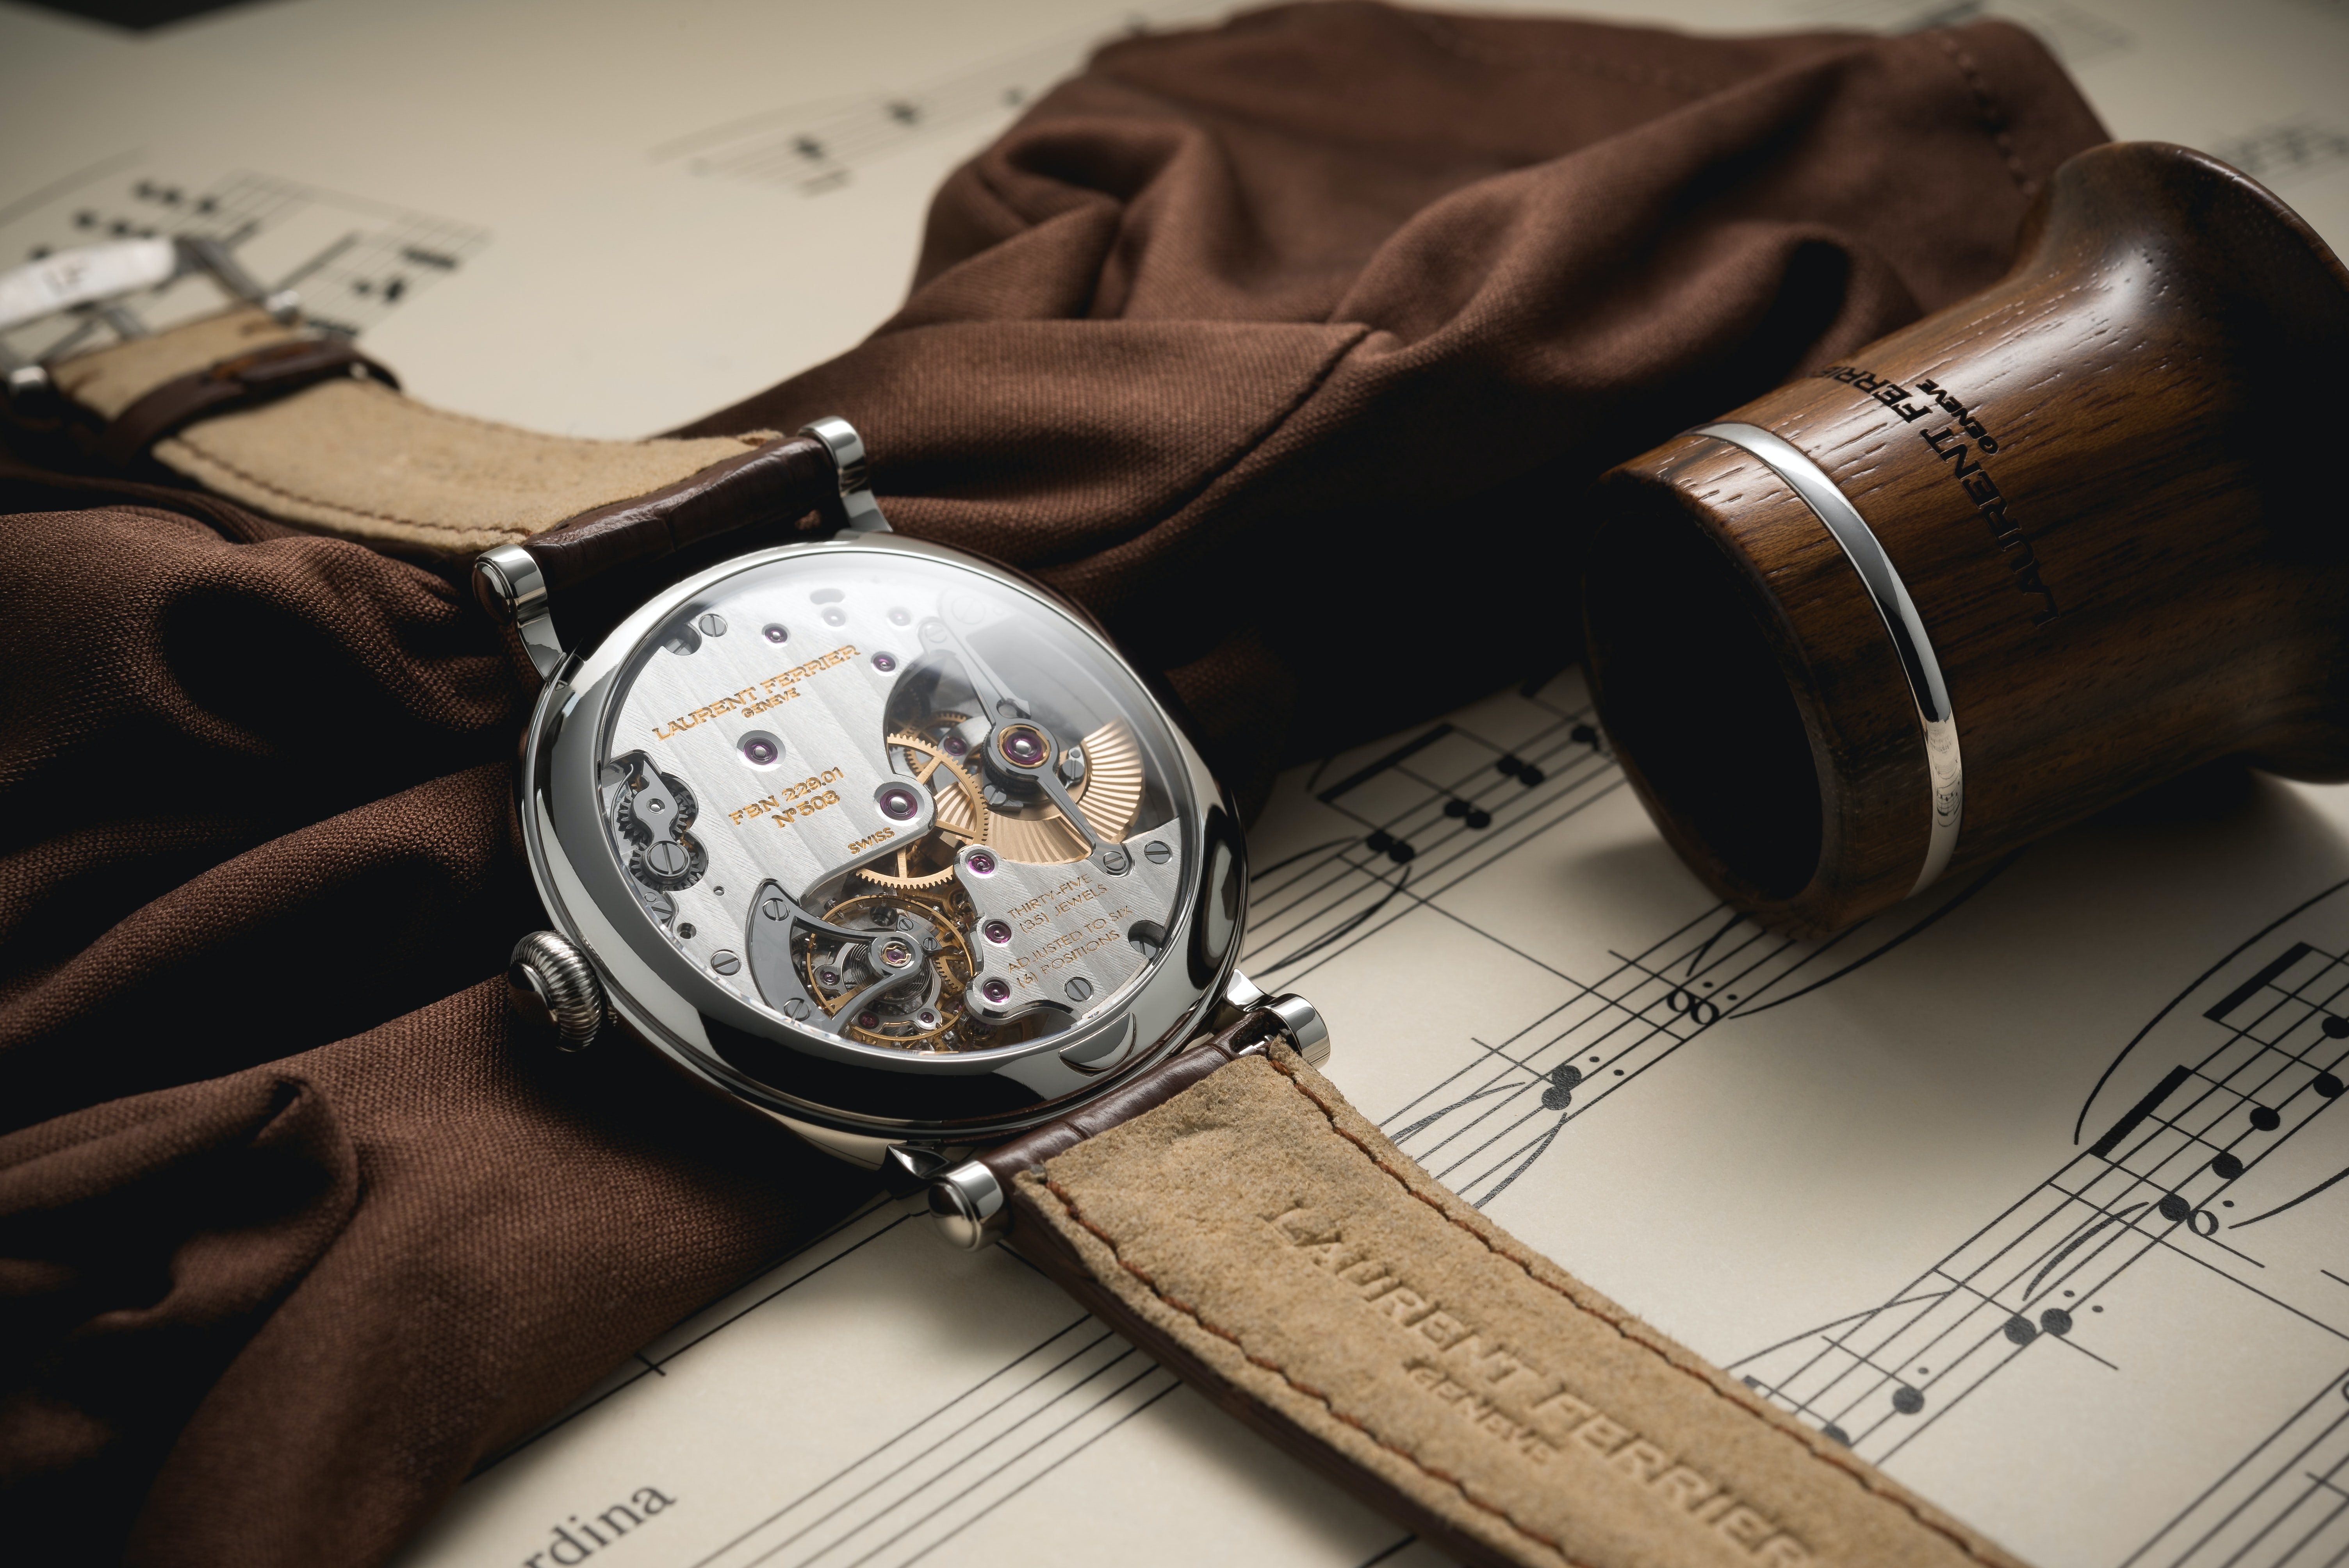 Introducing: The Laurent Ferrier Montre École, A New Case For A Modern Masterpiece Of A Movement Introducing: The Laurent Ferrier Montre École, A New Case For A Modern Masterpiece Of A Movement LF MONTRE ECOLE WG BACK LIFESTYLE